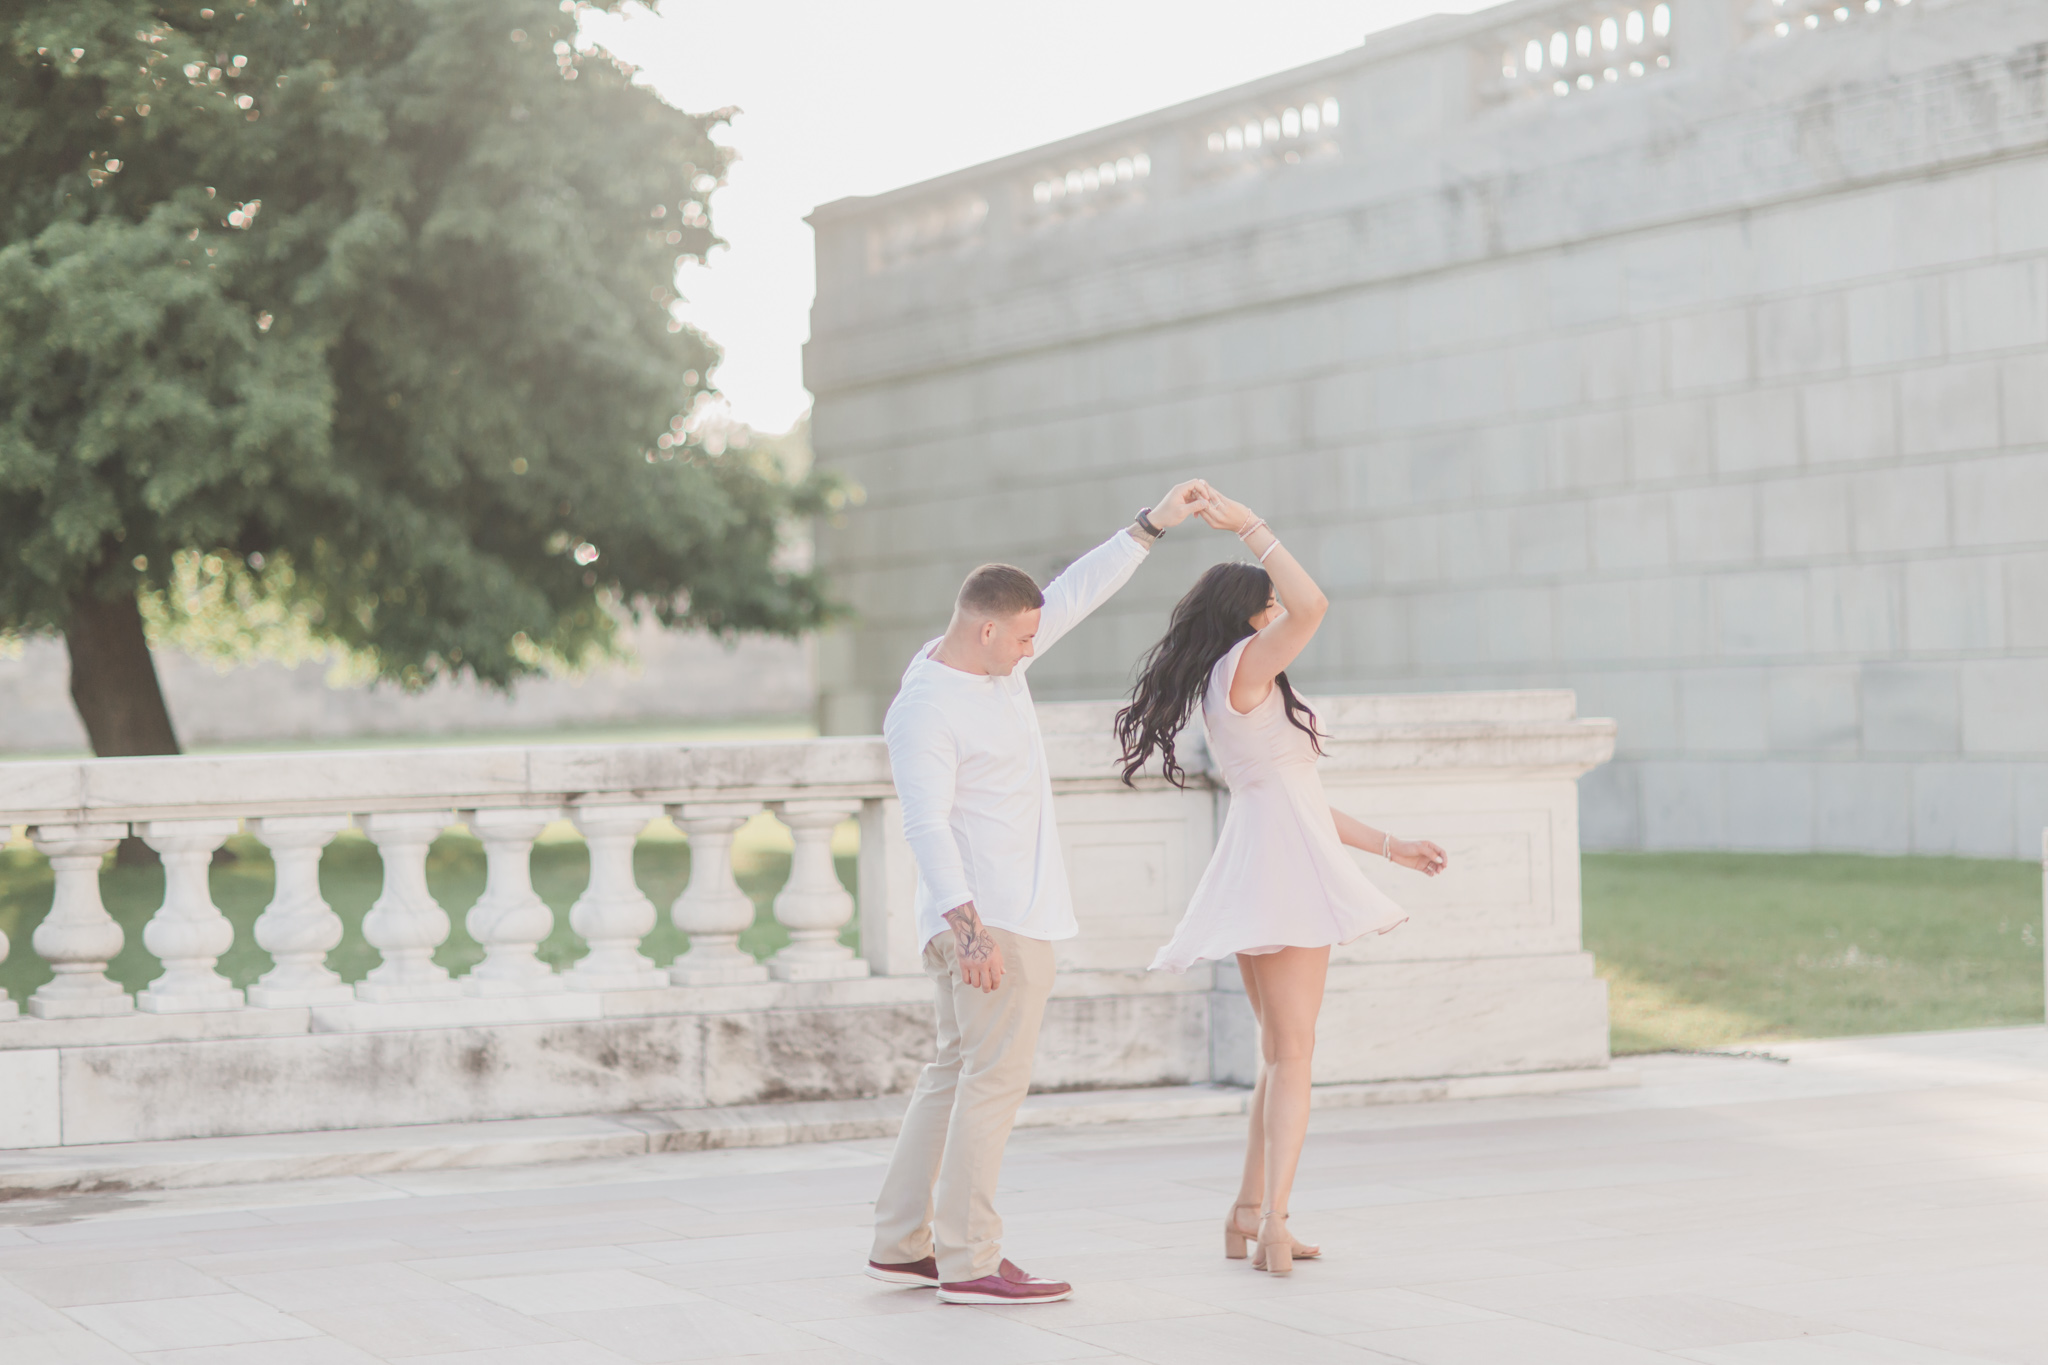 engagement_wedding_photographer_jillian_rollins_photography-148.jpg